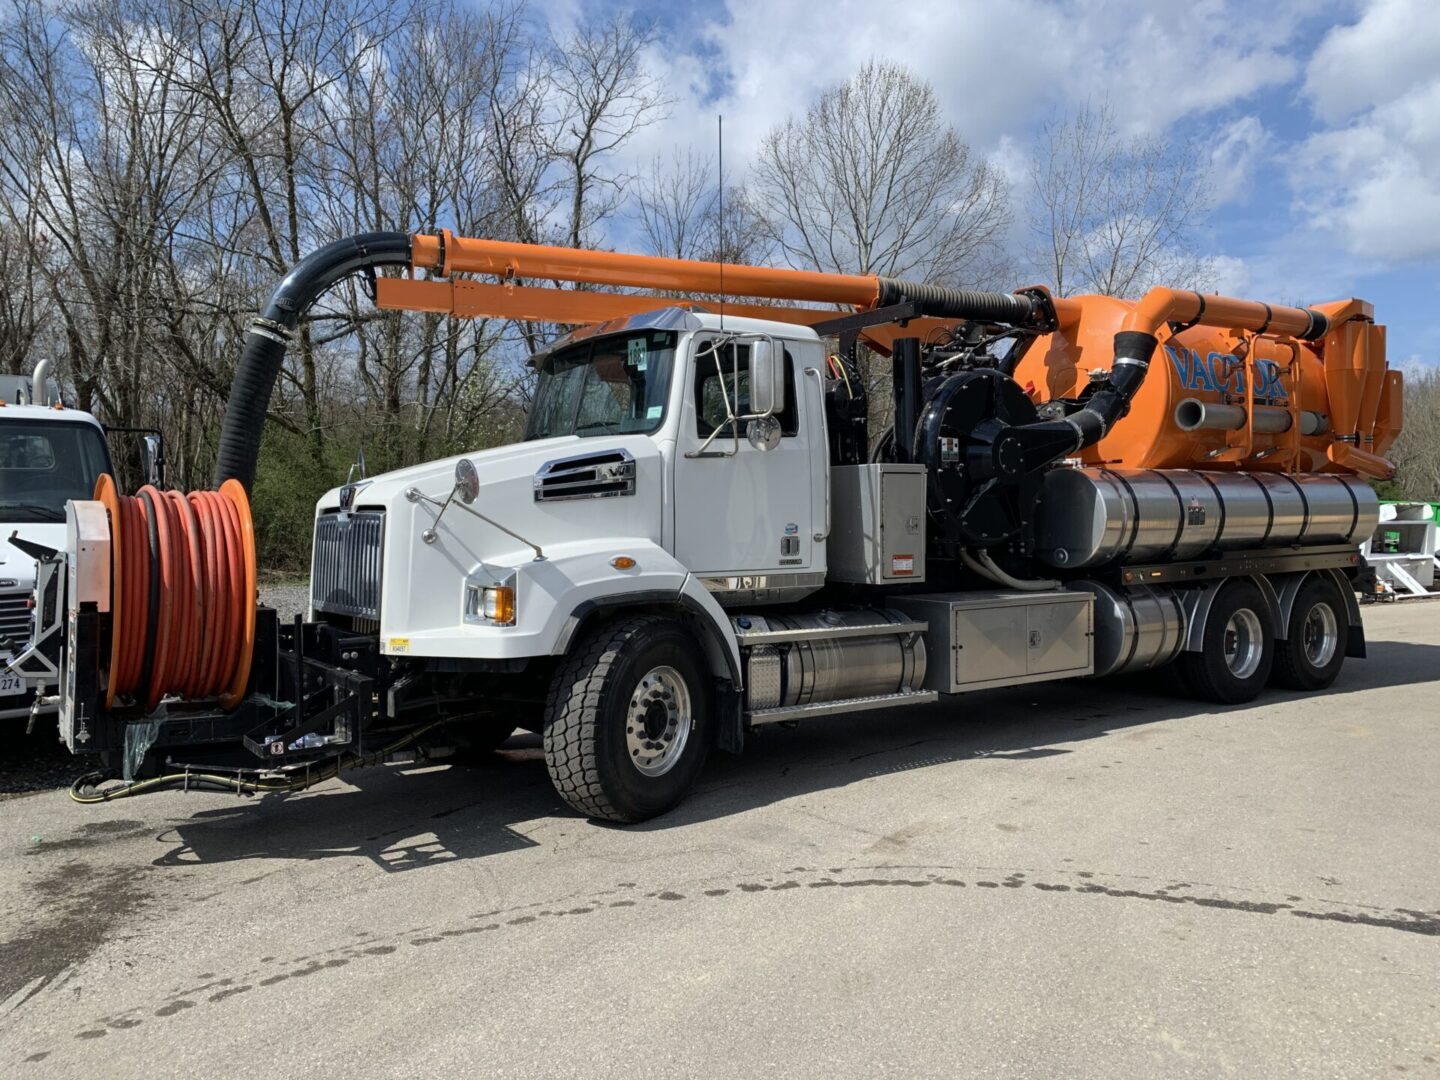 sewer truck parked for sale.